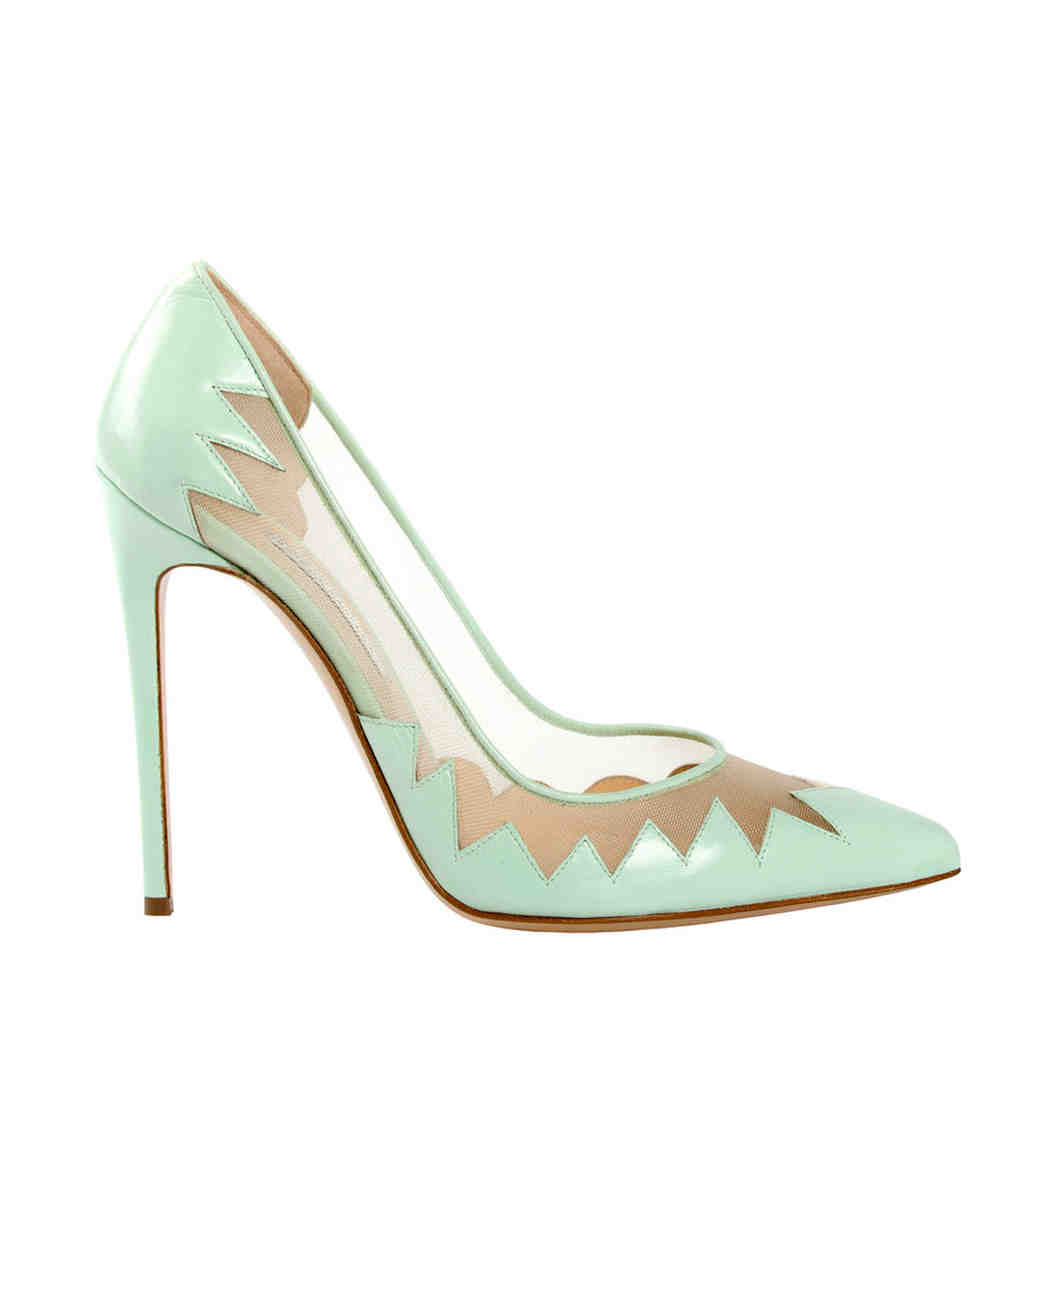 mesh-wedding-shoes-bionda-castana-leandra-pump-0315.jpg